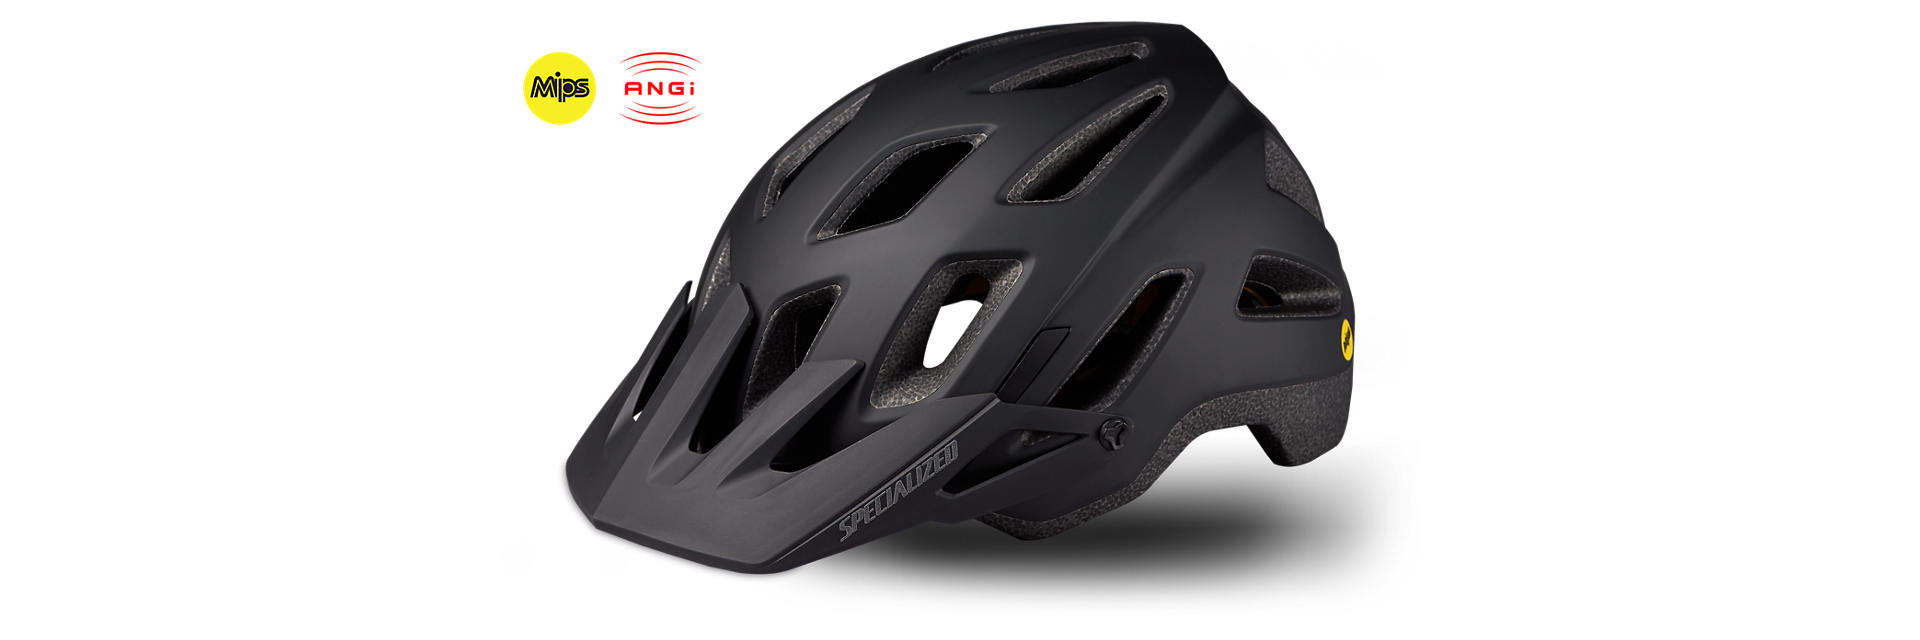 ANGI Helmet - This is the smartest thing I've ever seen. Basically, you are buying peace of mind and security. This helmet not only keeps your head safe, but keeps your family knowing if something happens. The technology comes in MTB or Road helmets.